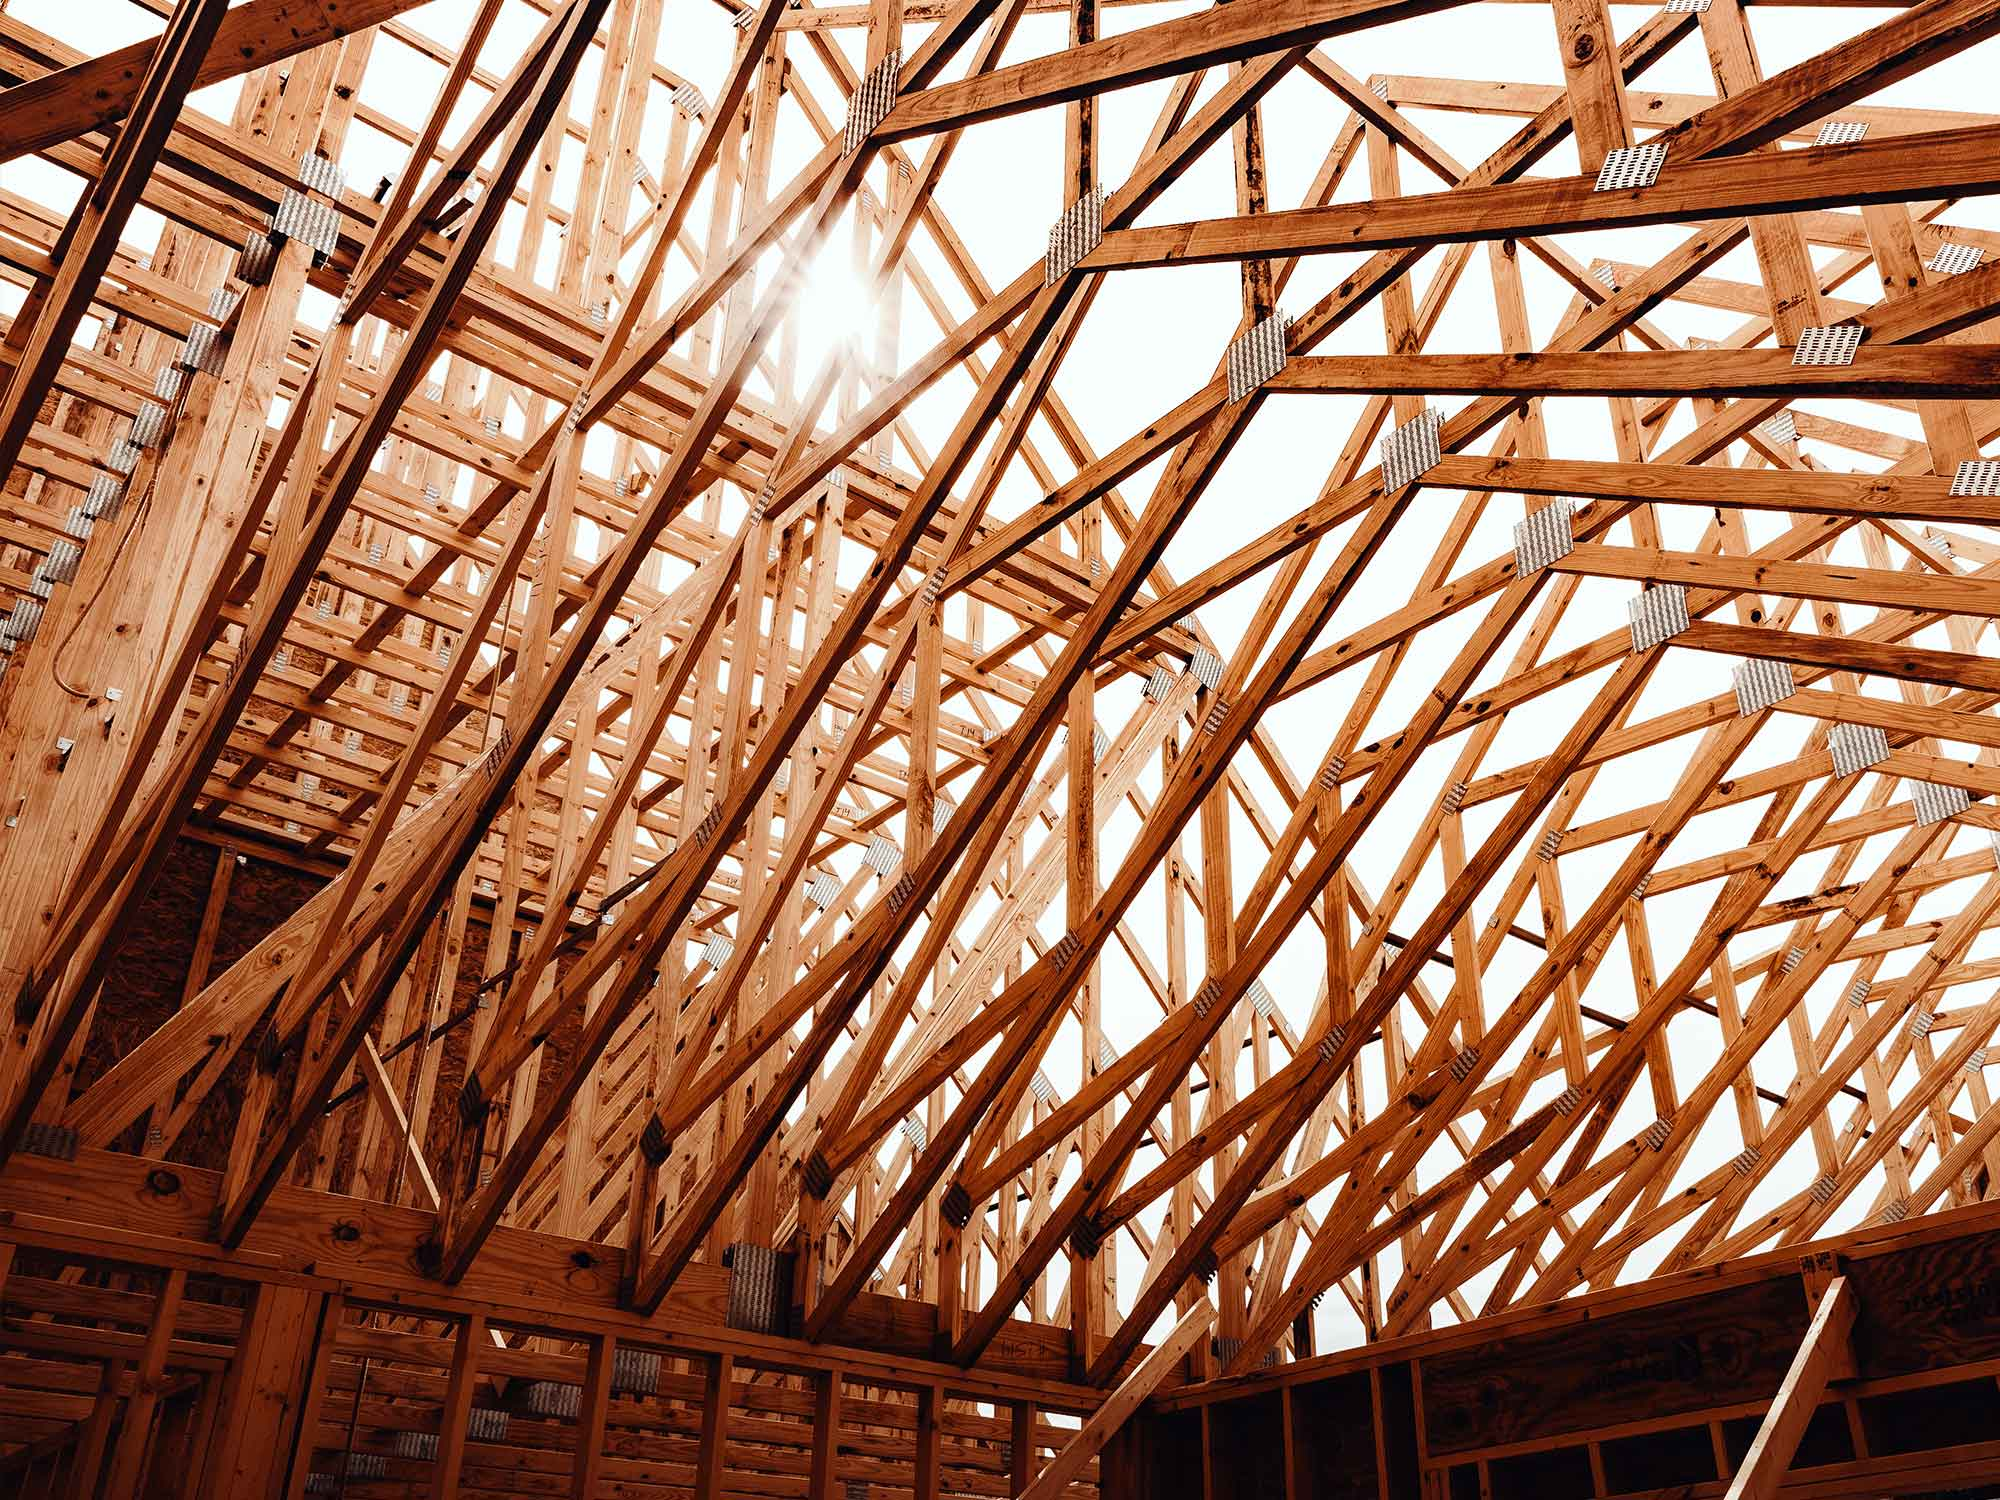 Ceiling rafters of new custom home by LA Construction.